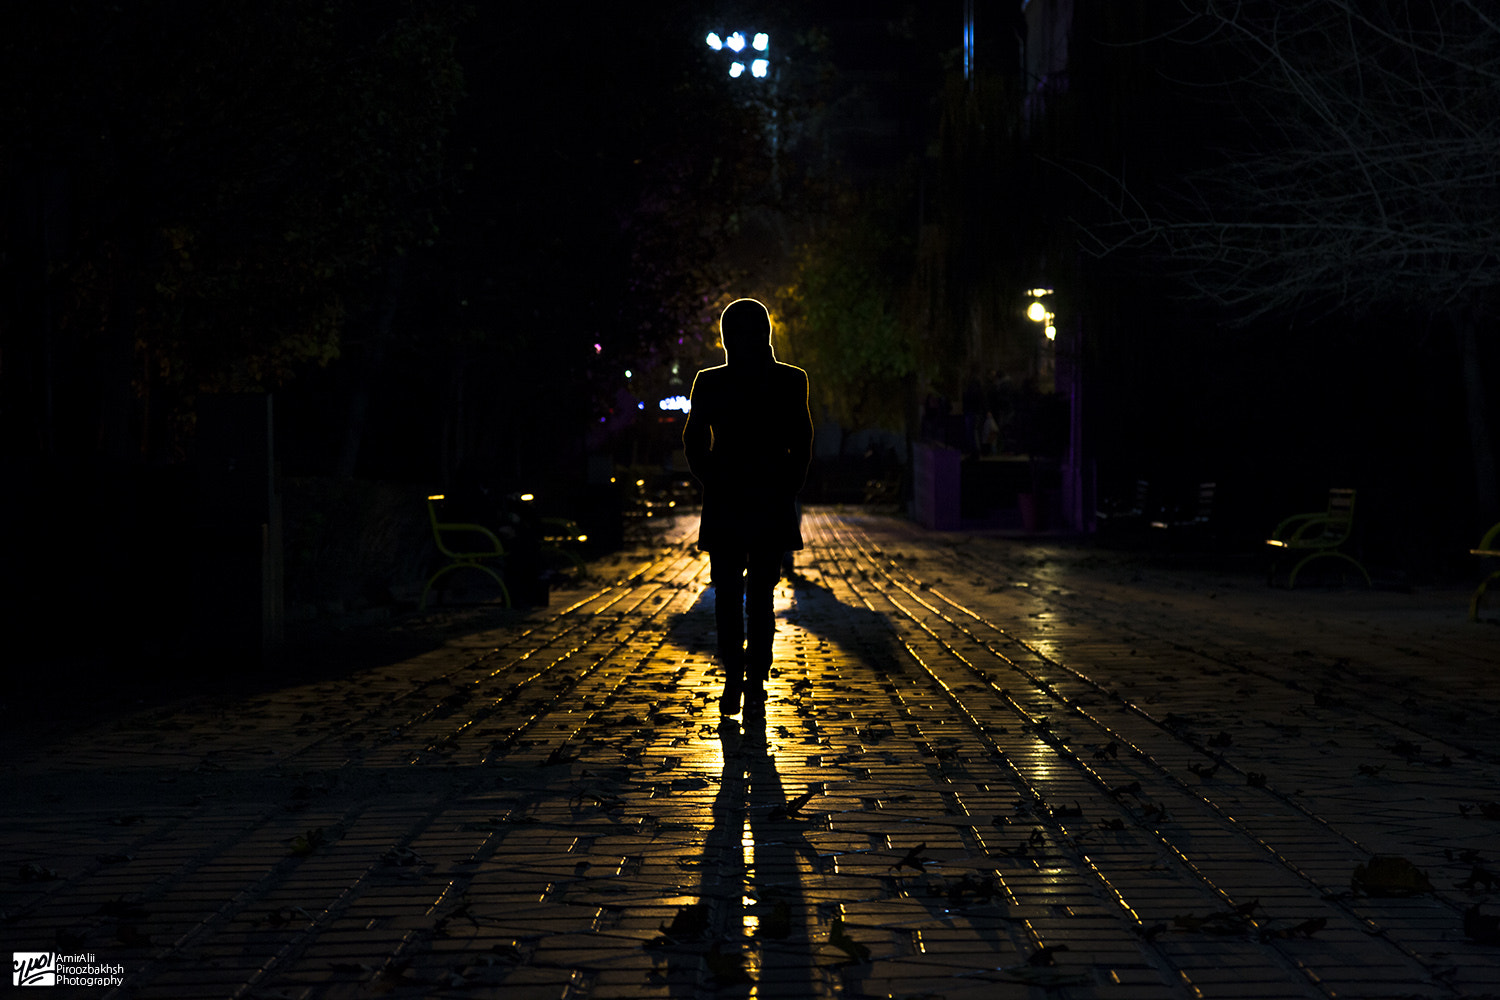 Photograph Walking into The Night by AmirAli Piroozbakhsh on 500px